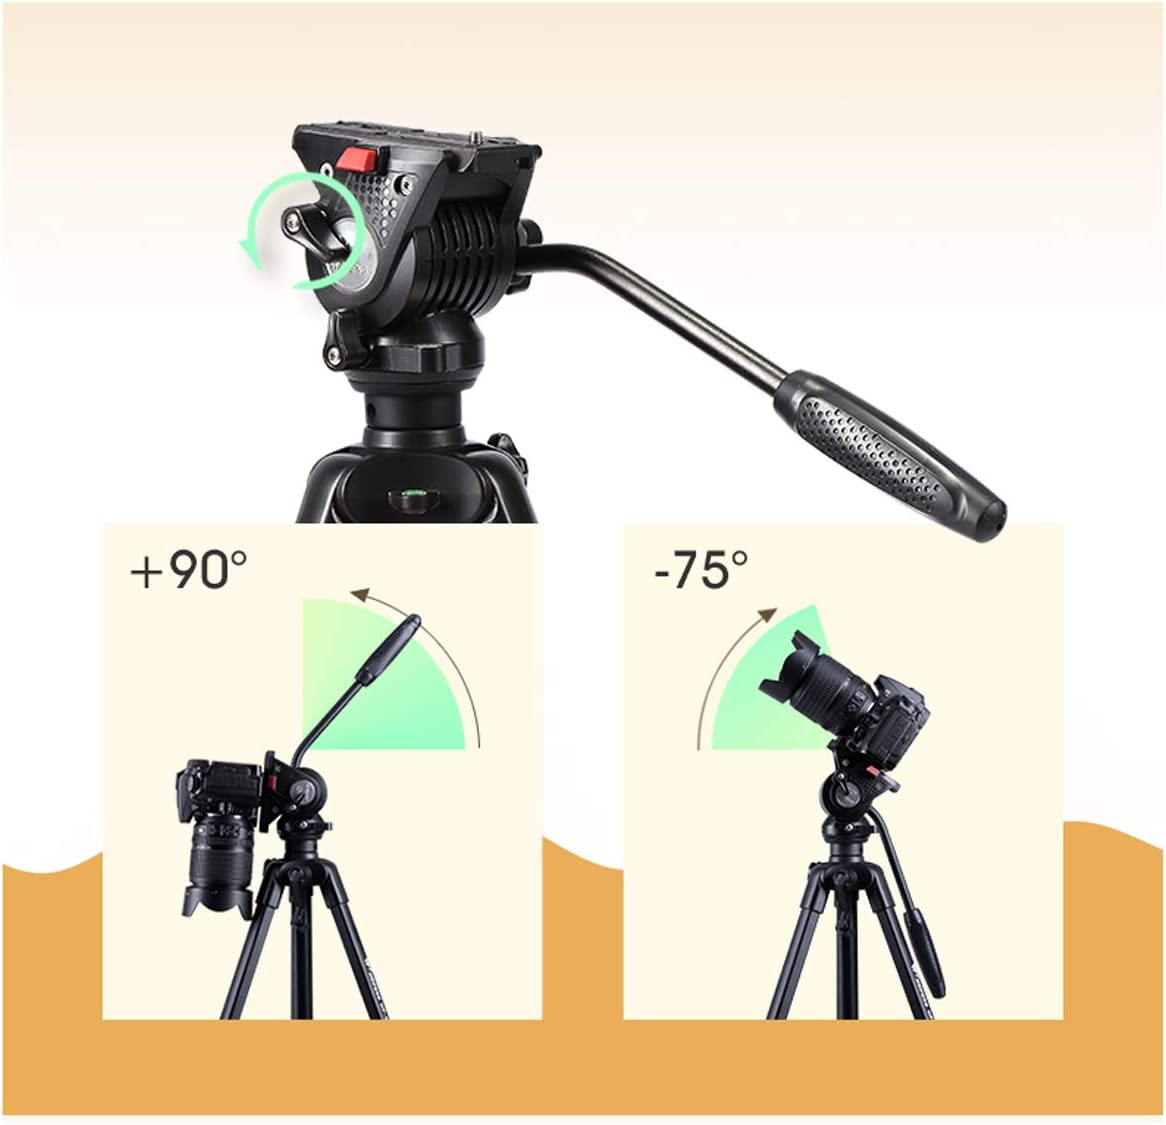 with Carrying Case Multi-Style Optional Size : Tripod B Outdoor Travel Photography Video Tripod CJGXJZJ Camera Tripod Suitable for SLR Mobile Phone Micro Single Light Aluminum Camera Stand